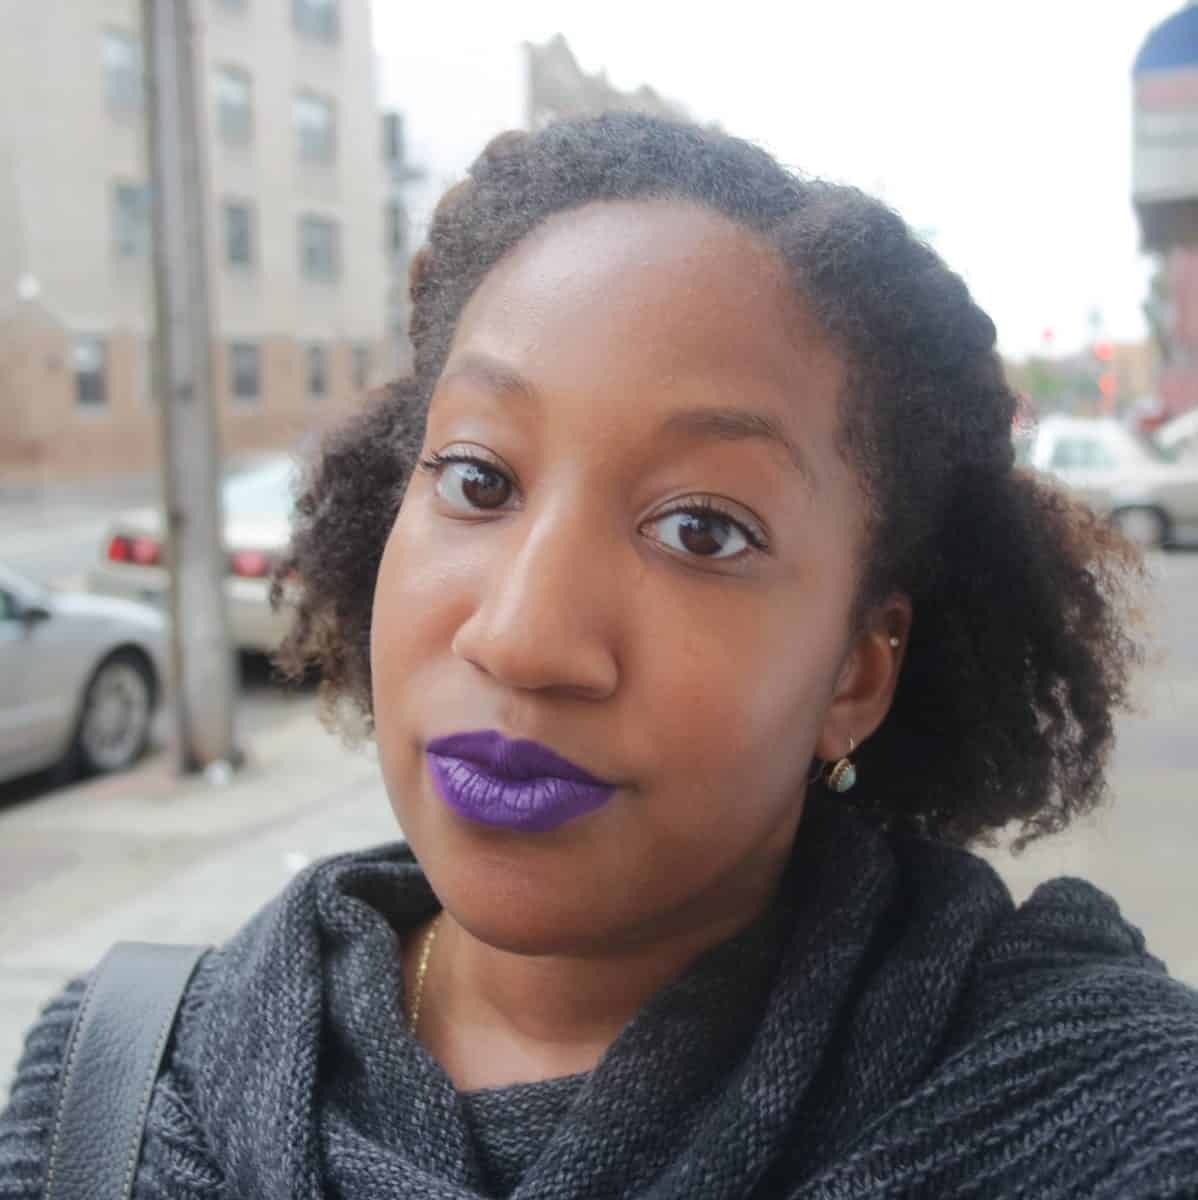 Colourpop Bedazzled - best fall lipstick colors for brown skin